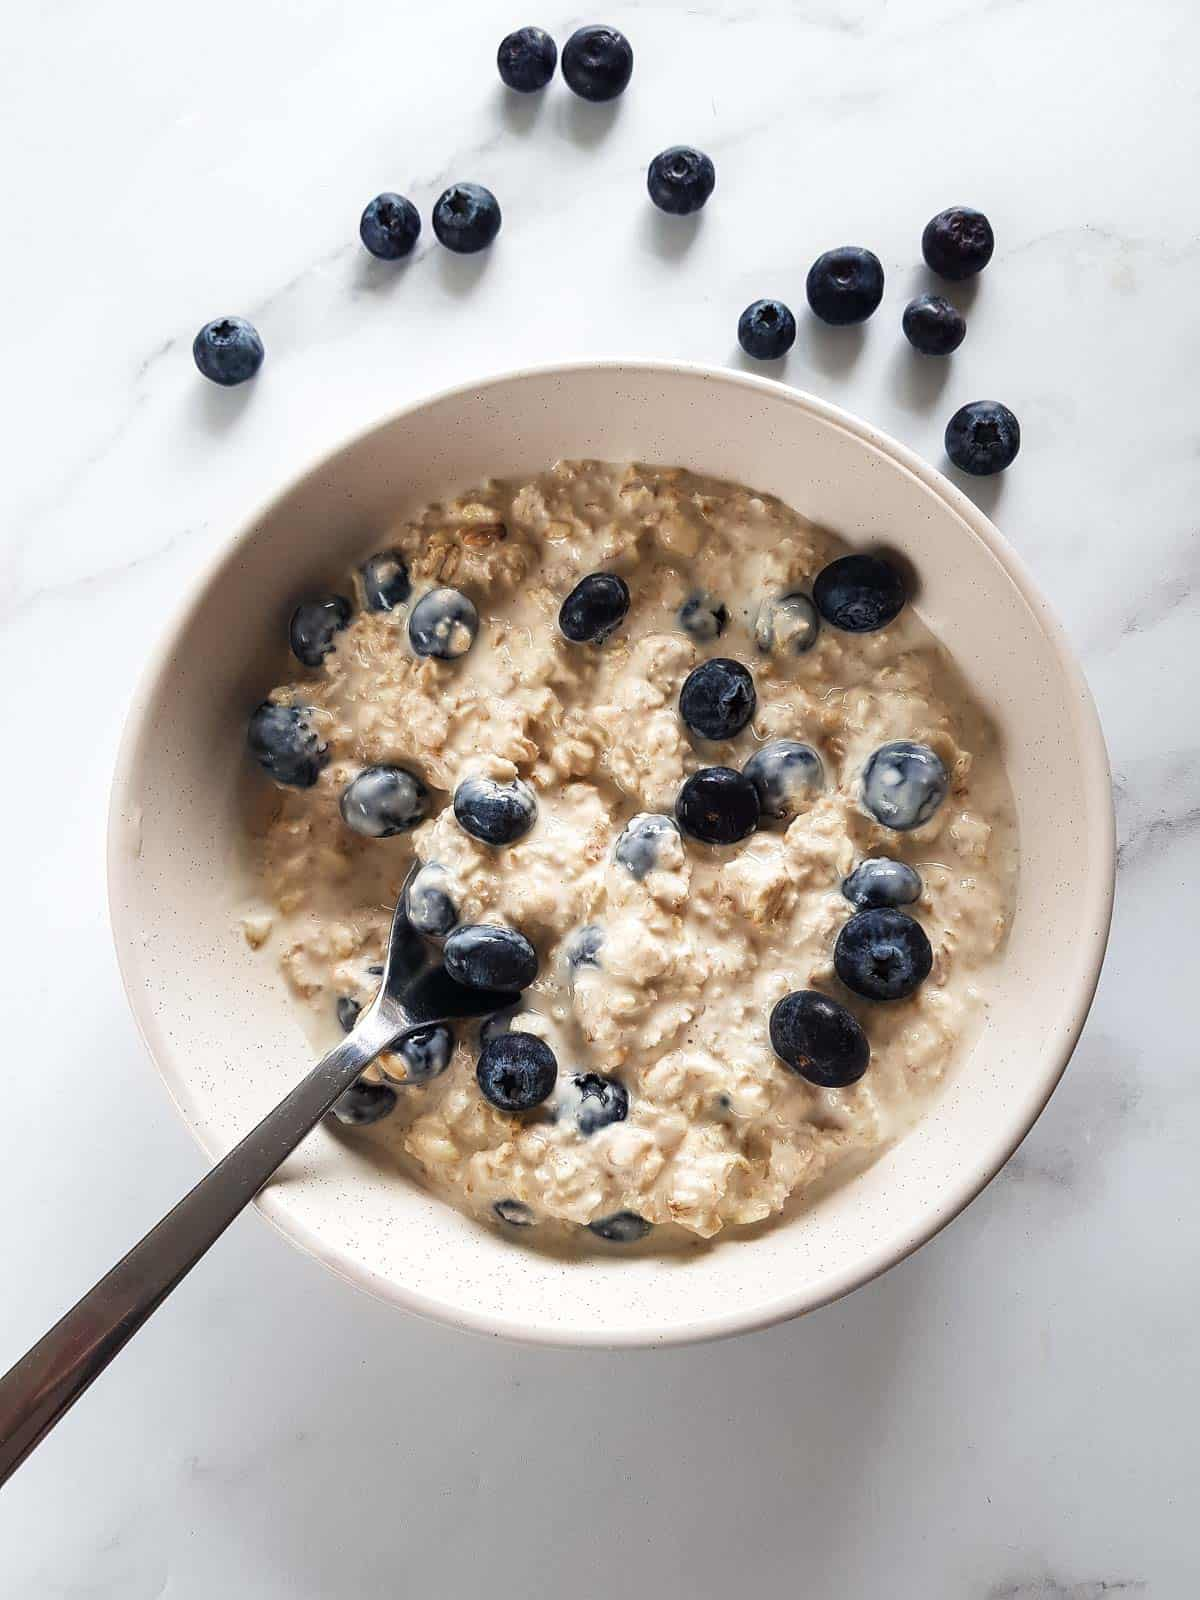 Chilled oats with blueberries.